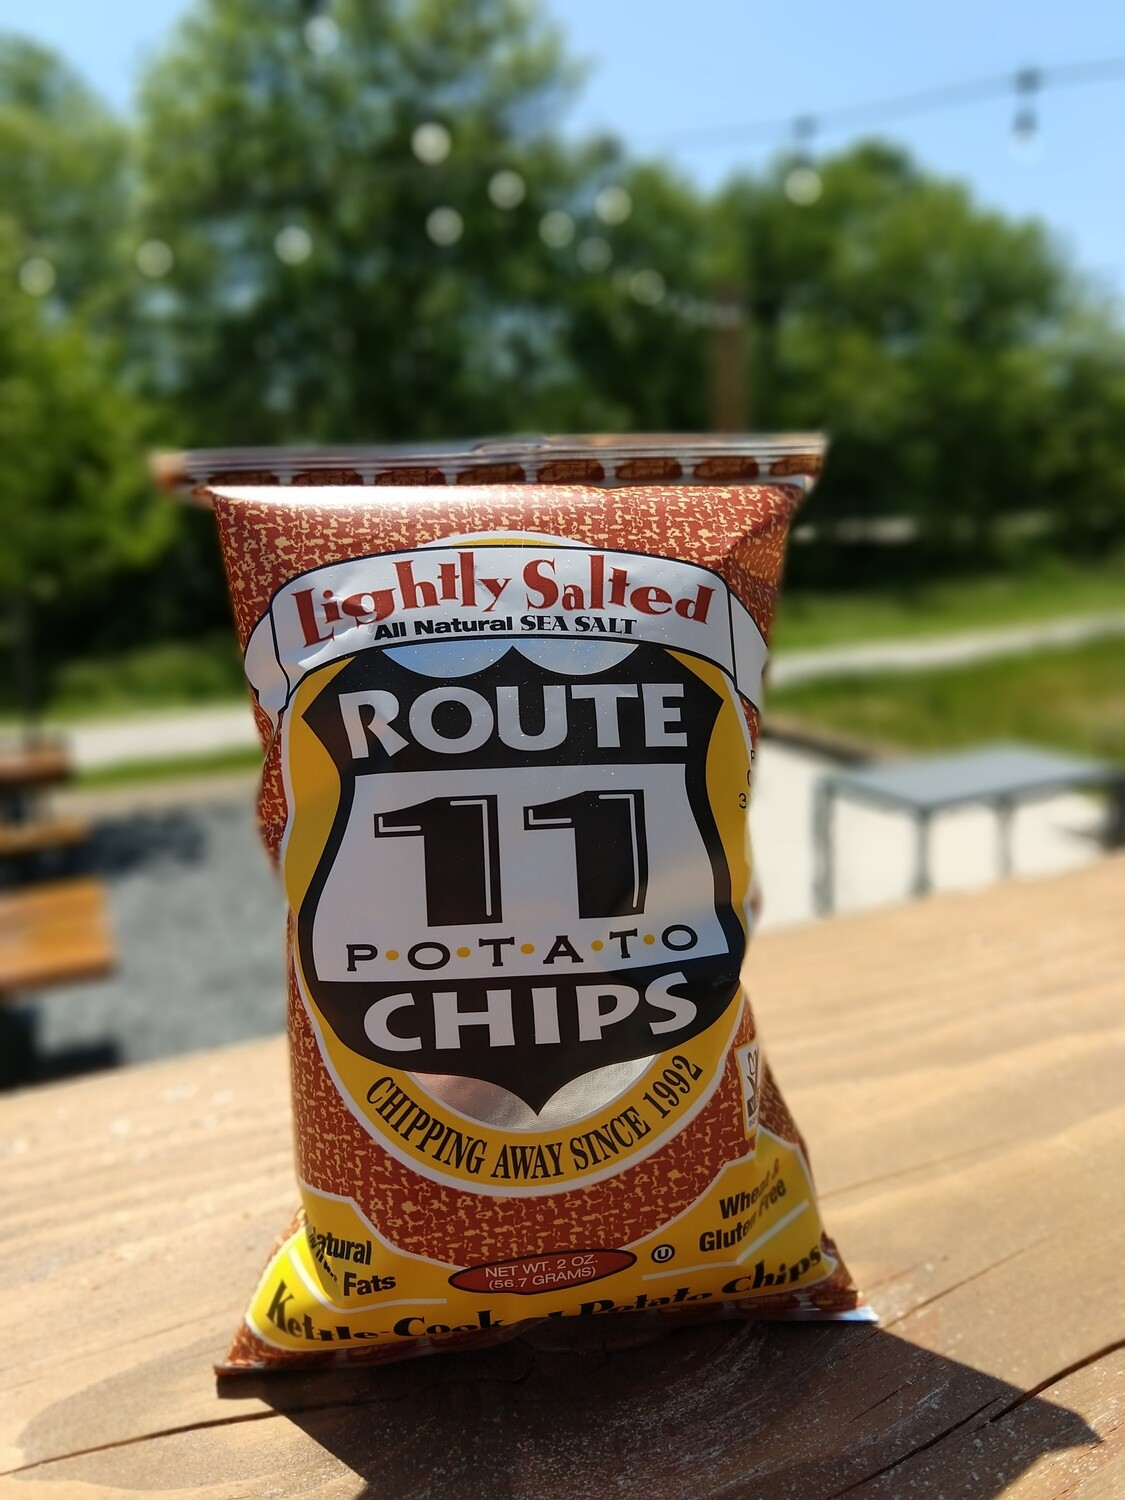 Route 11 Chips - Lightly Salted